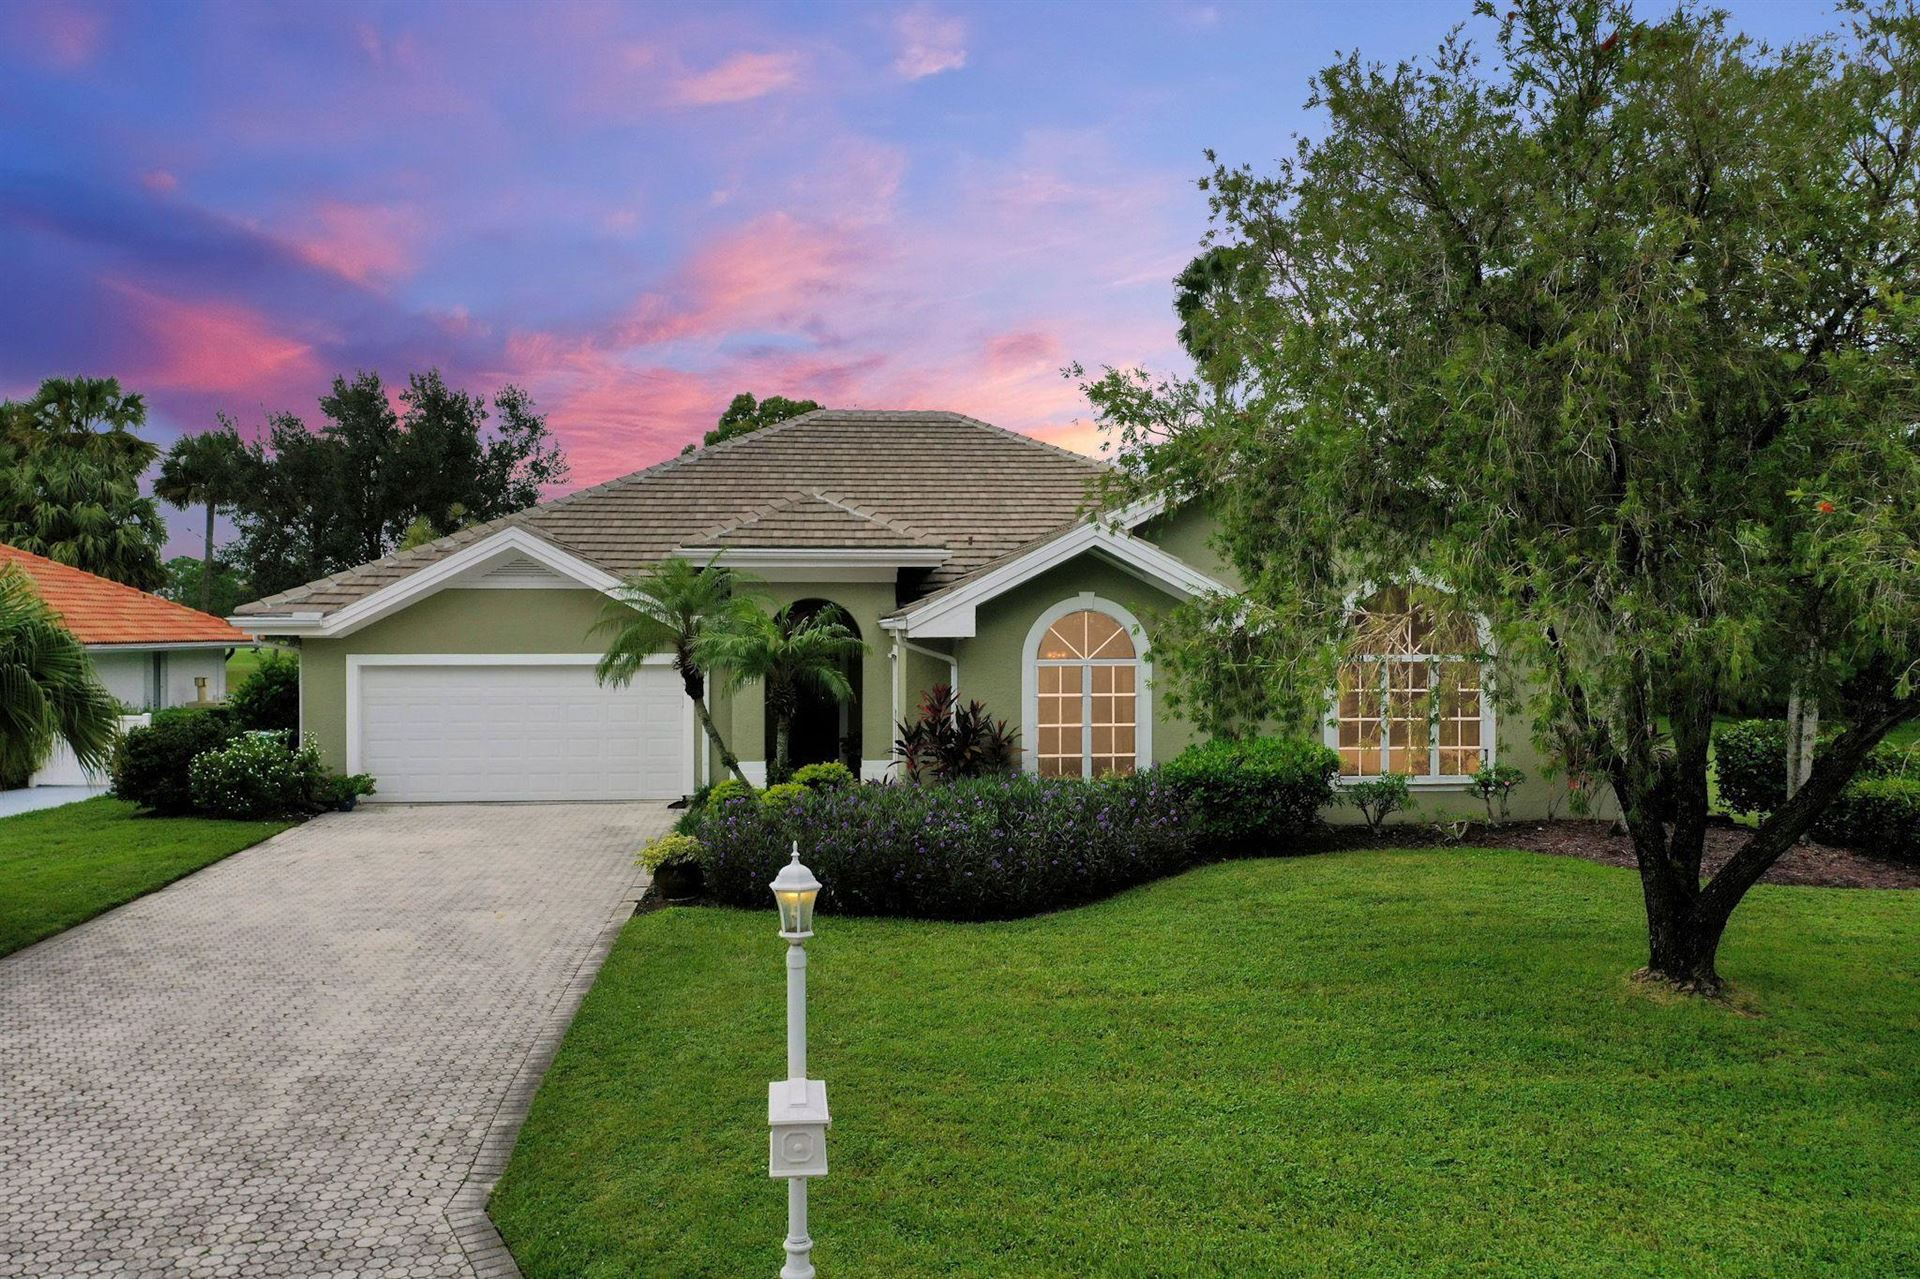 Photo of 1257 SW Cedar Cove, Port Saint Lucie, FL 34986 (MLS # RX-10660493)